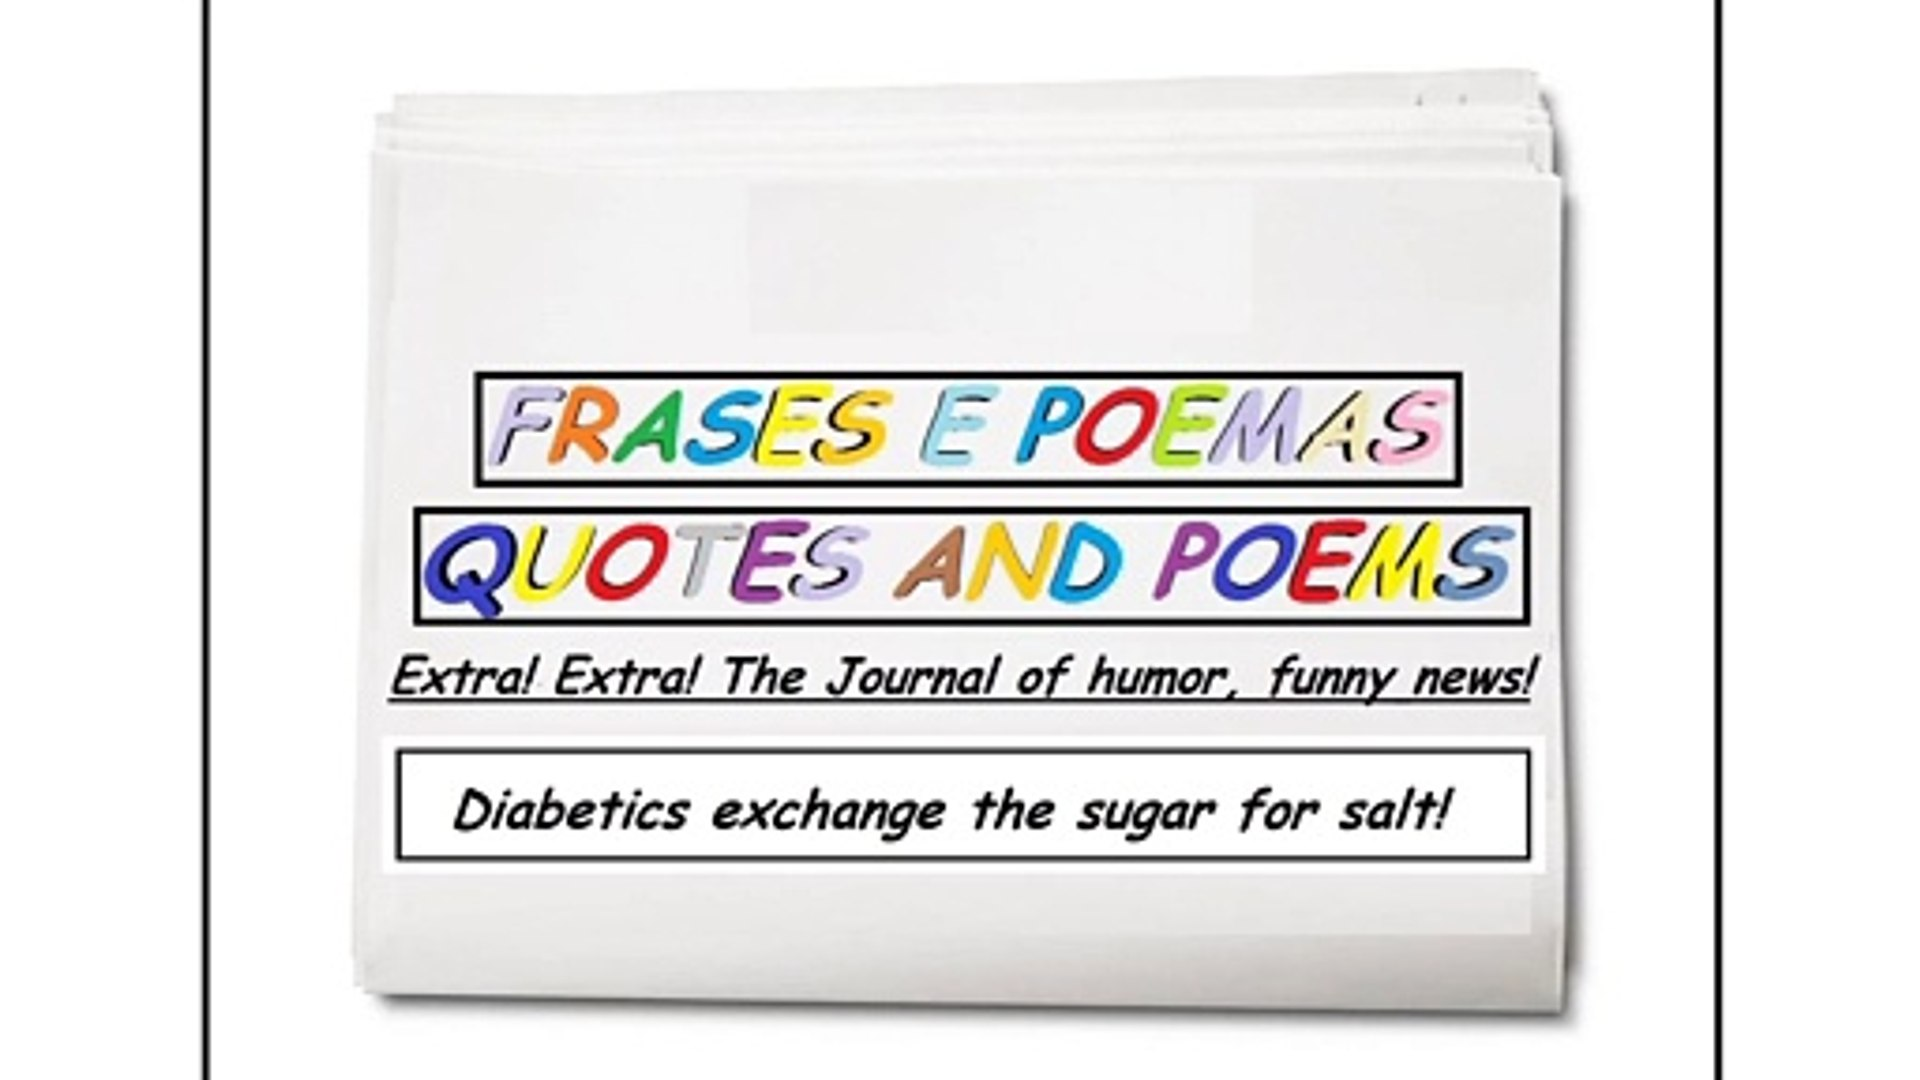 Funny News Diabetics Exchange The Sugar For Salt Quotes And Poems